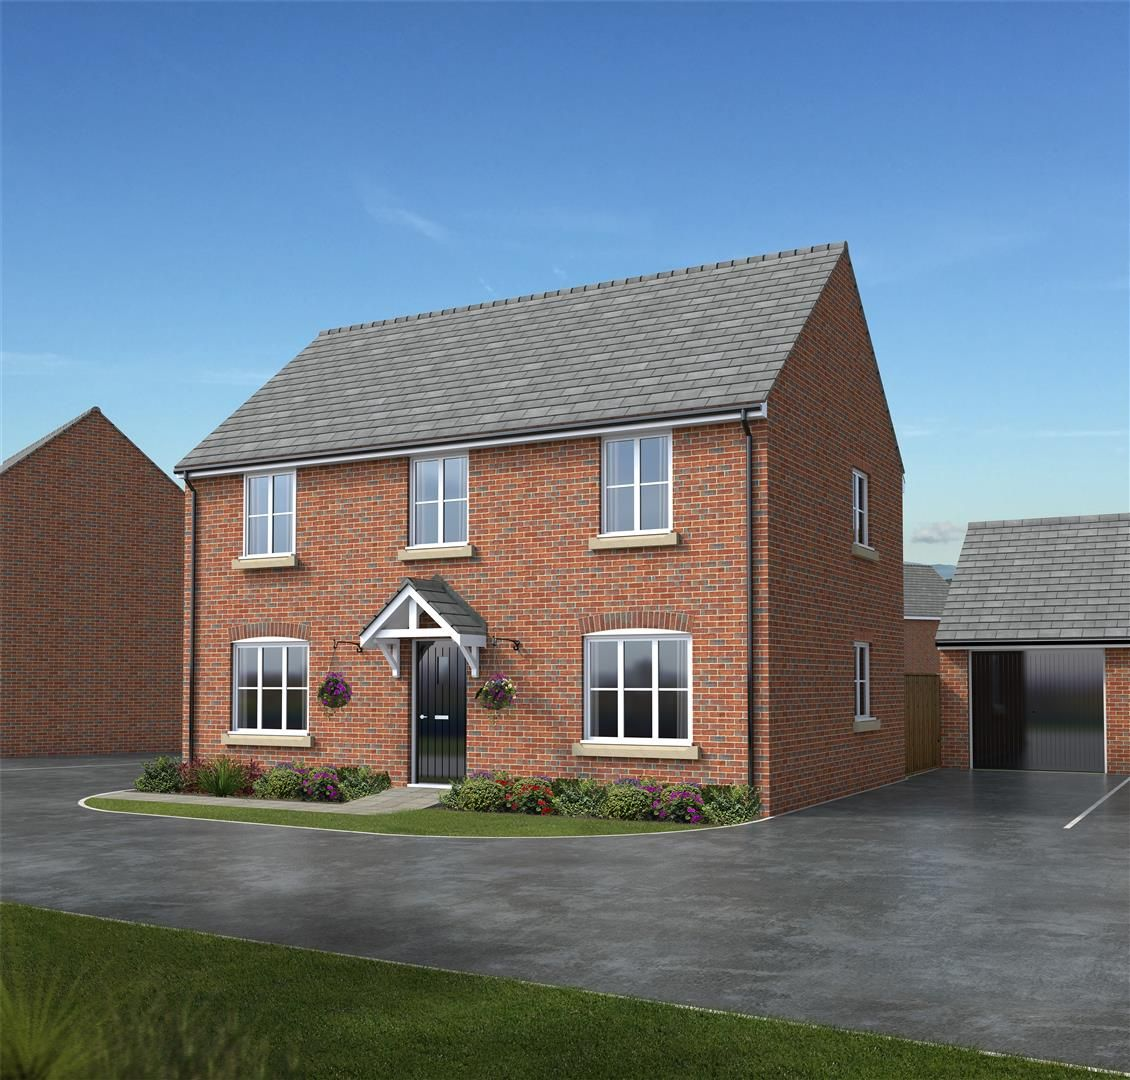 4 bed detached for sale in Kingstone  - Property Image 1